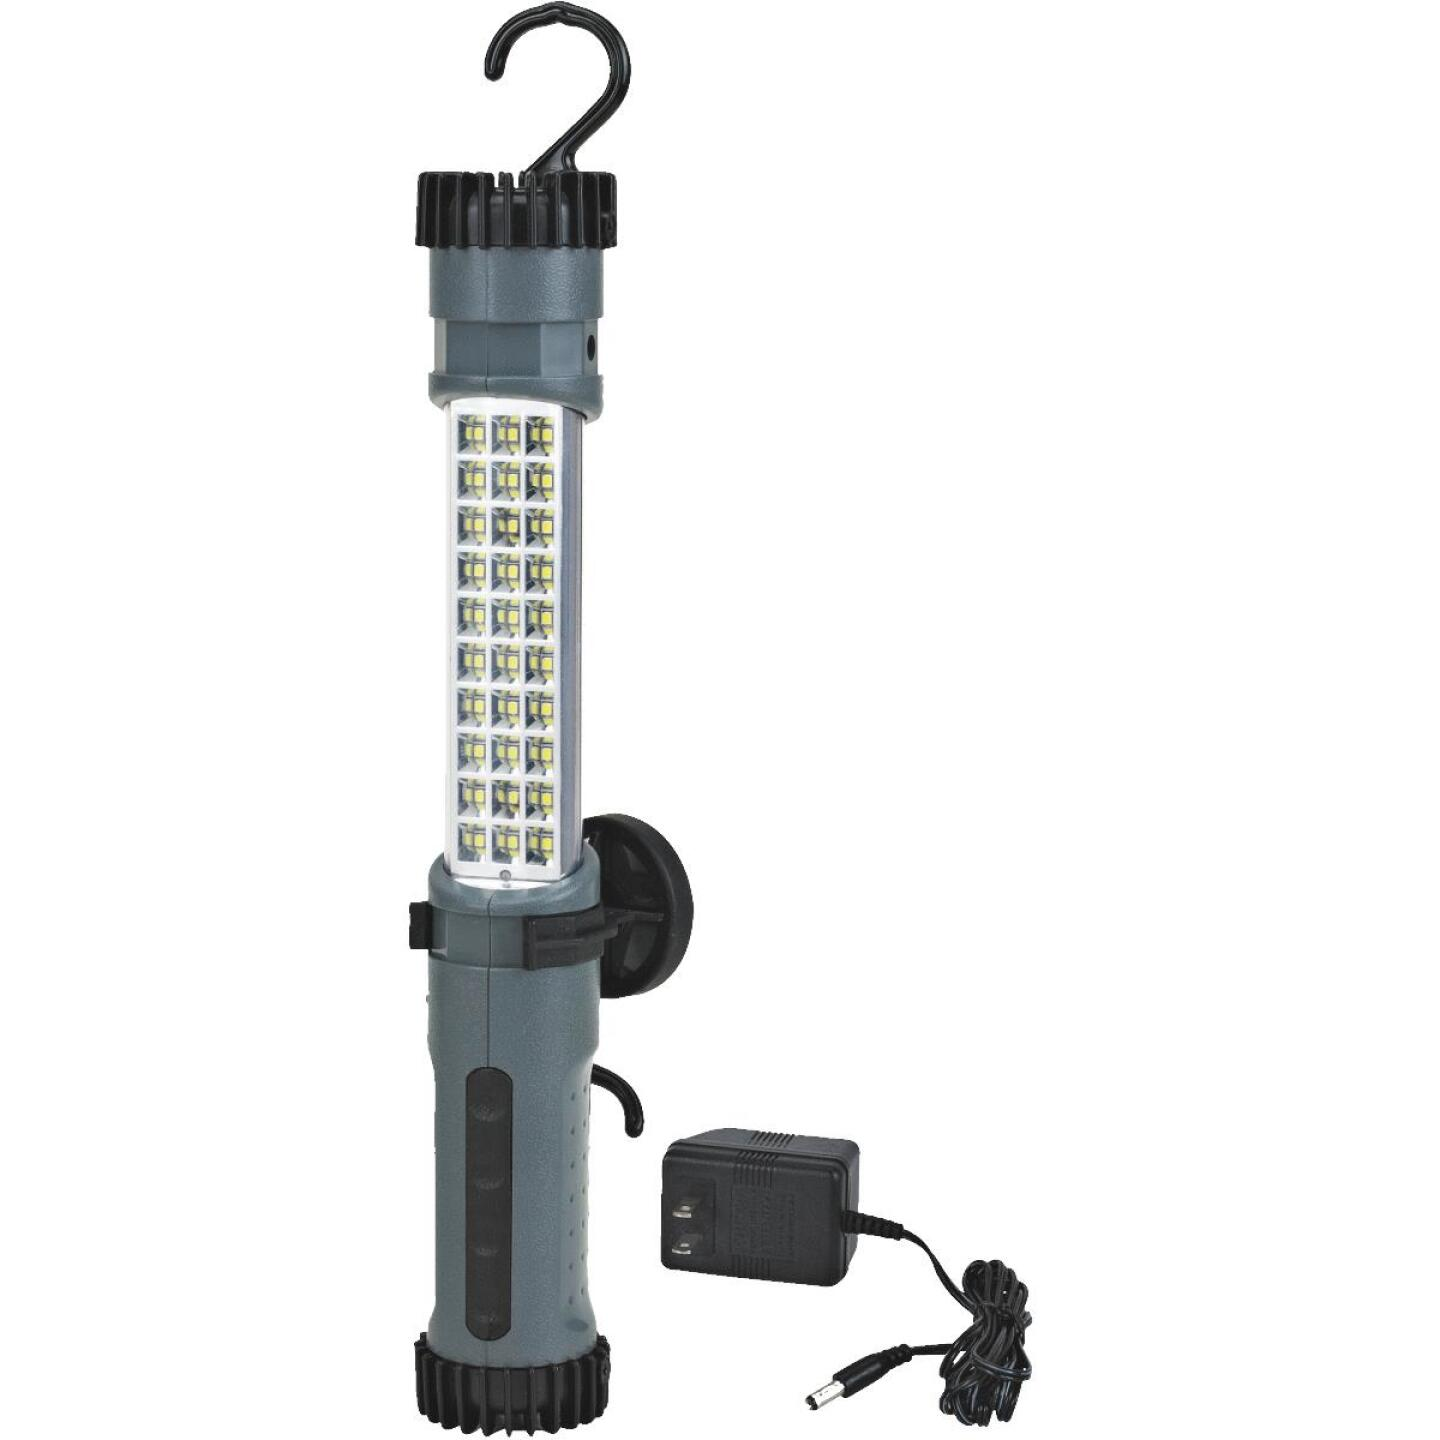 ProLite Electronix 300 Lm. LED Rechargeable Handheld Work Light Image 1